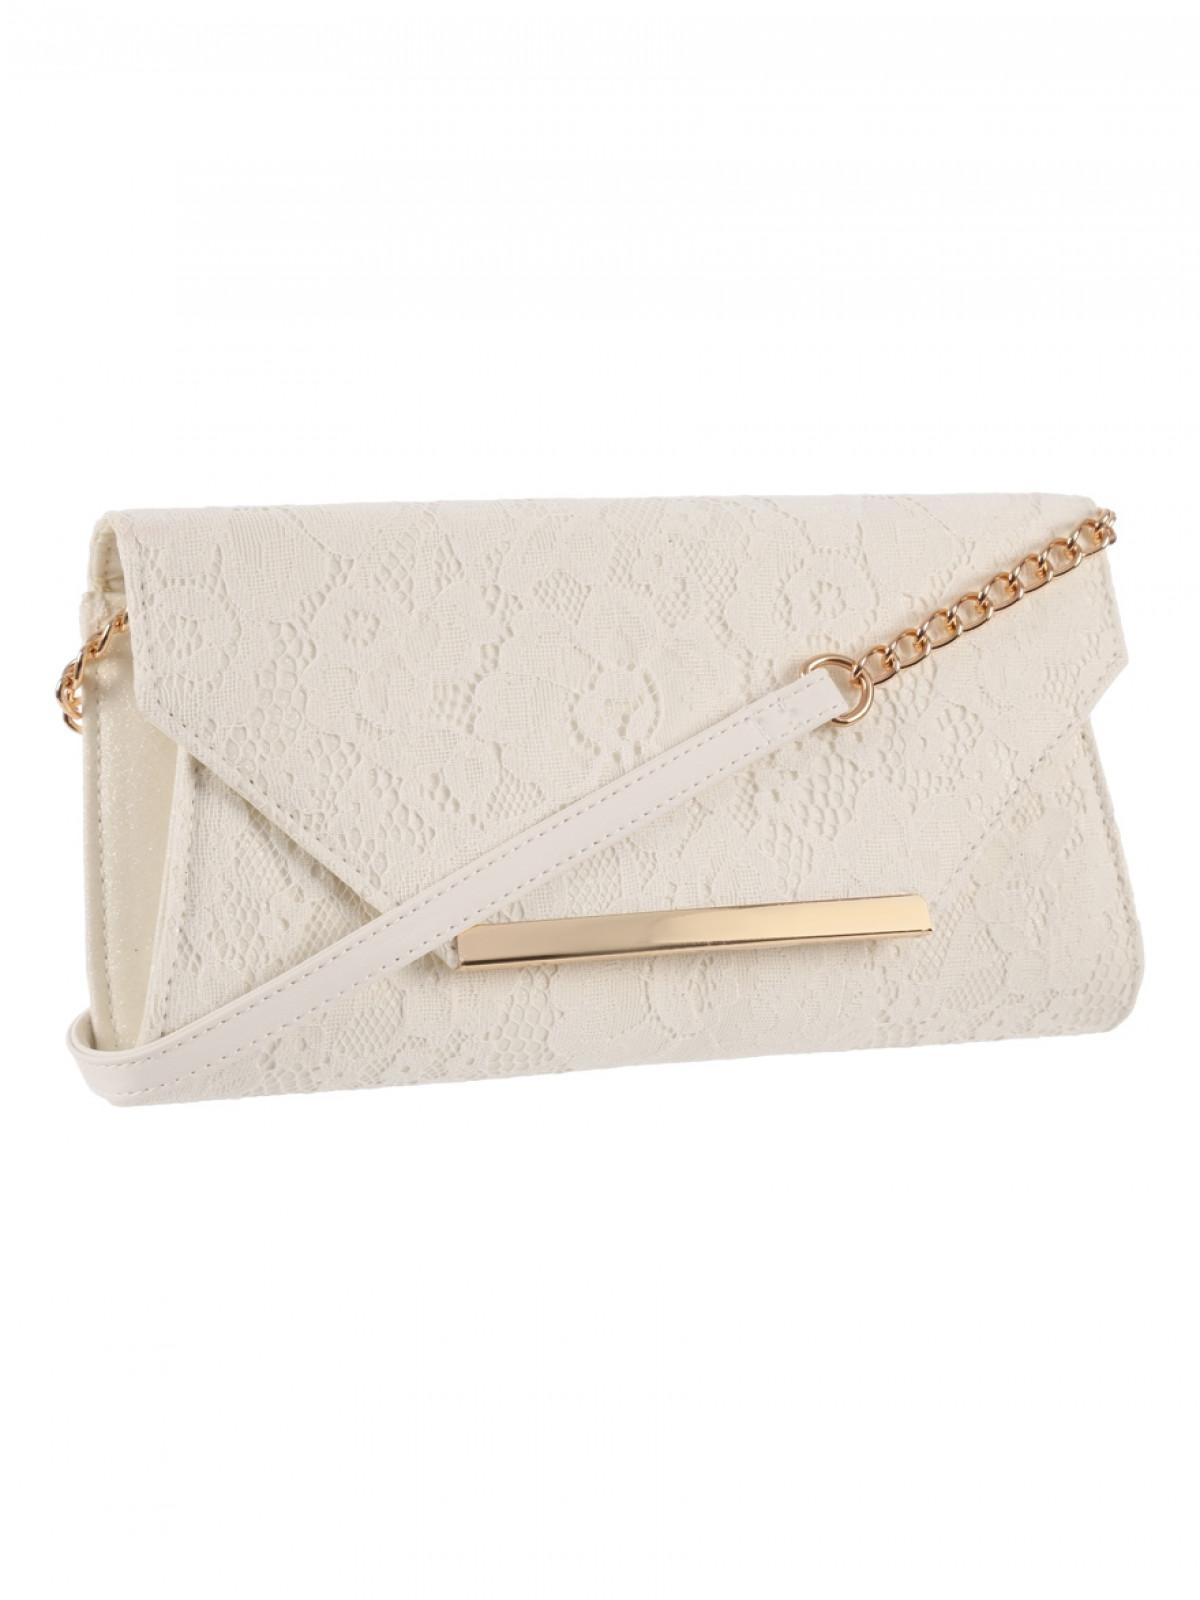 official supplier top-rated official best selection of Womens Ivory Lace Clutch Bag | Peacocks